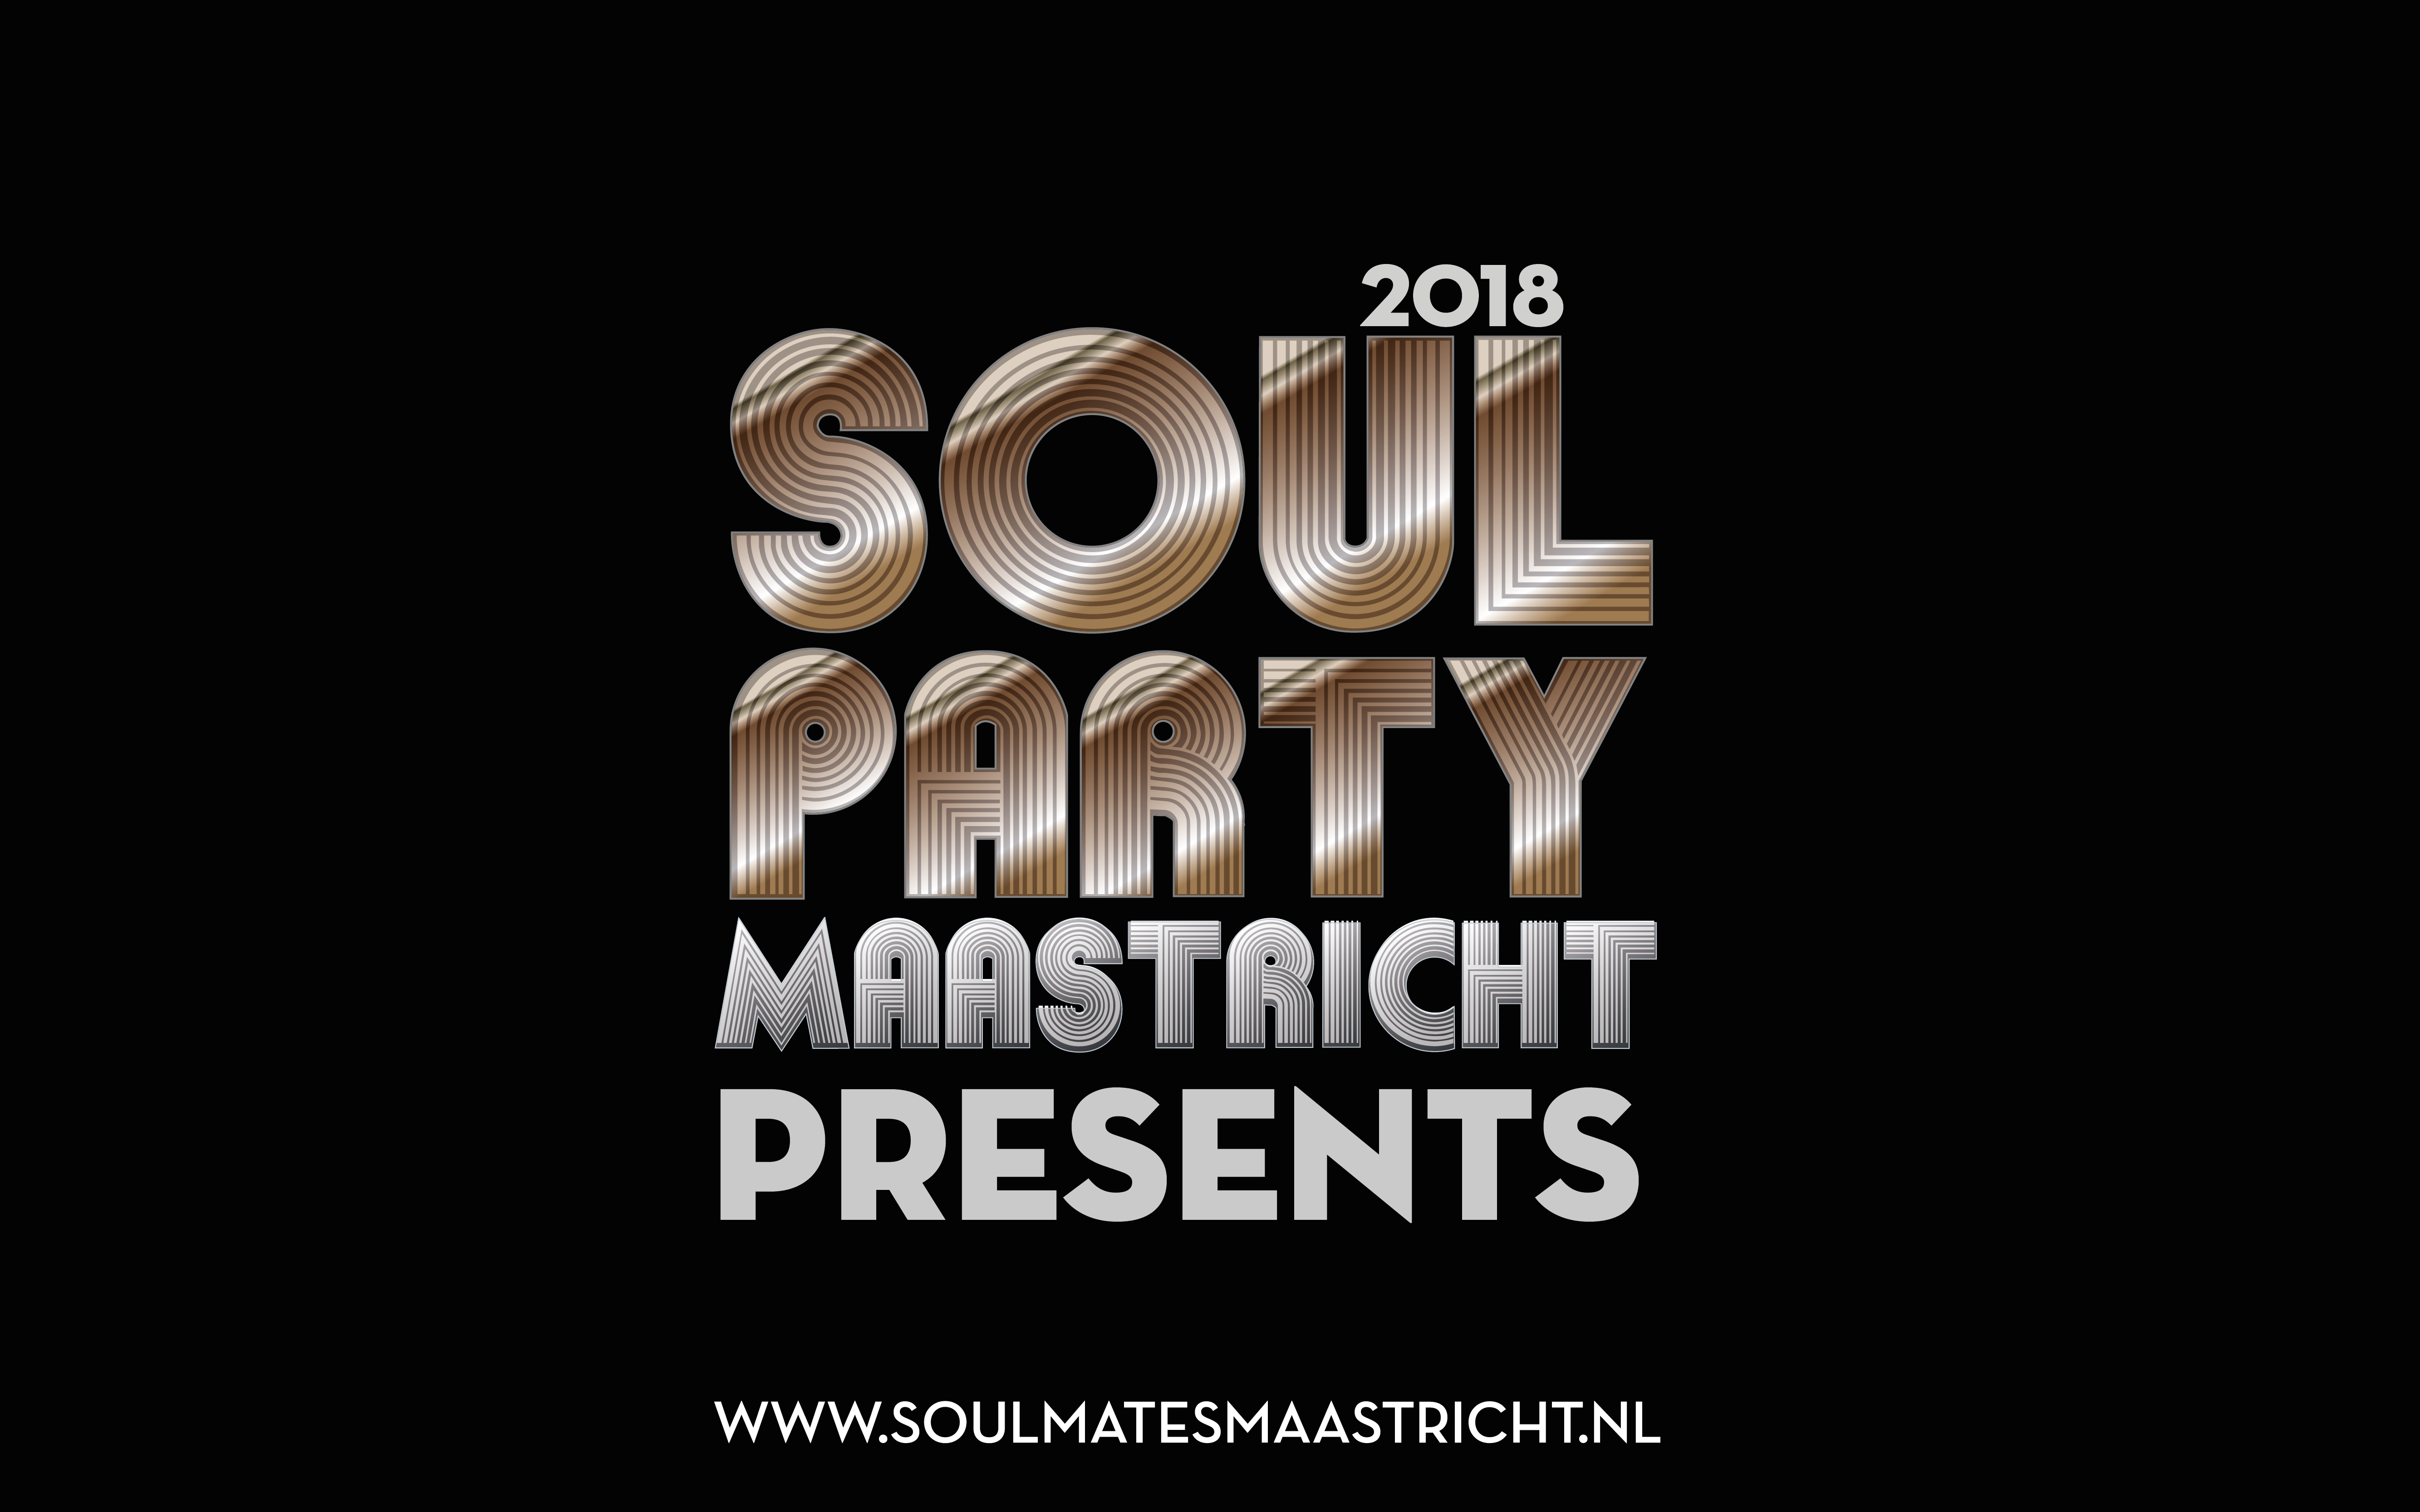 Soulparty 29 september 2018